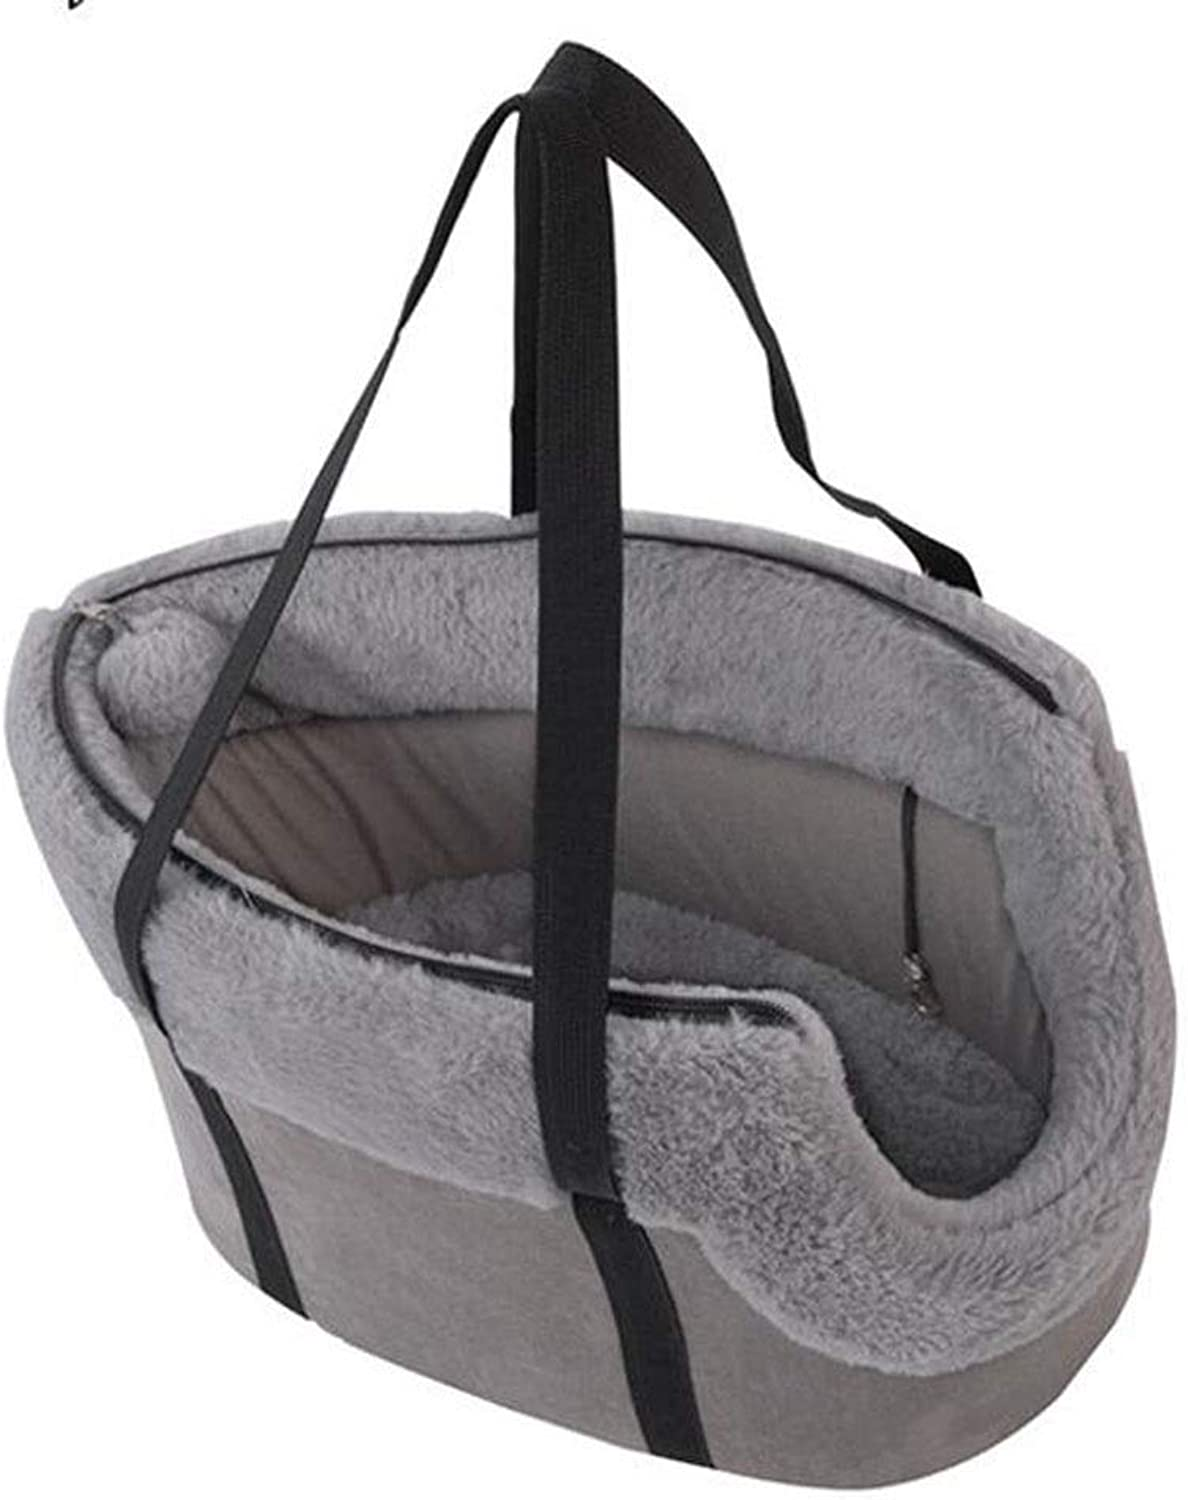 Breathable Pet Backpack Cat Bag Dog Bag Outcrop Bag Teddy Out of The Deer Cashmere Carrying Case